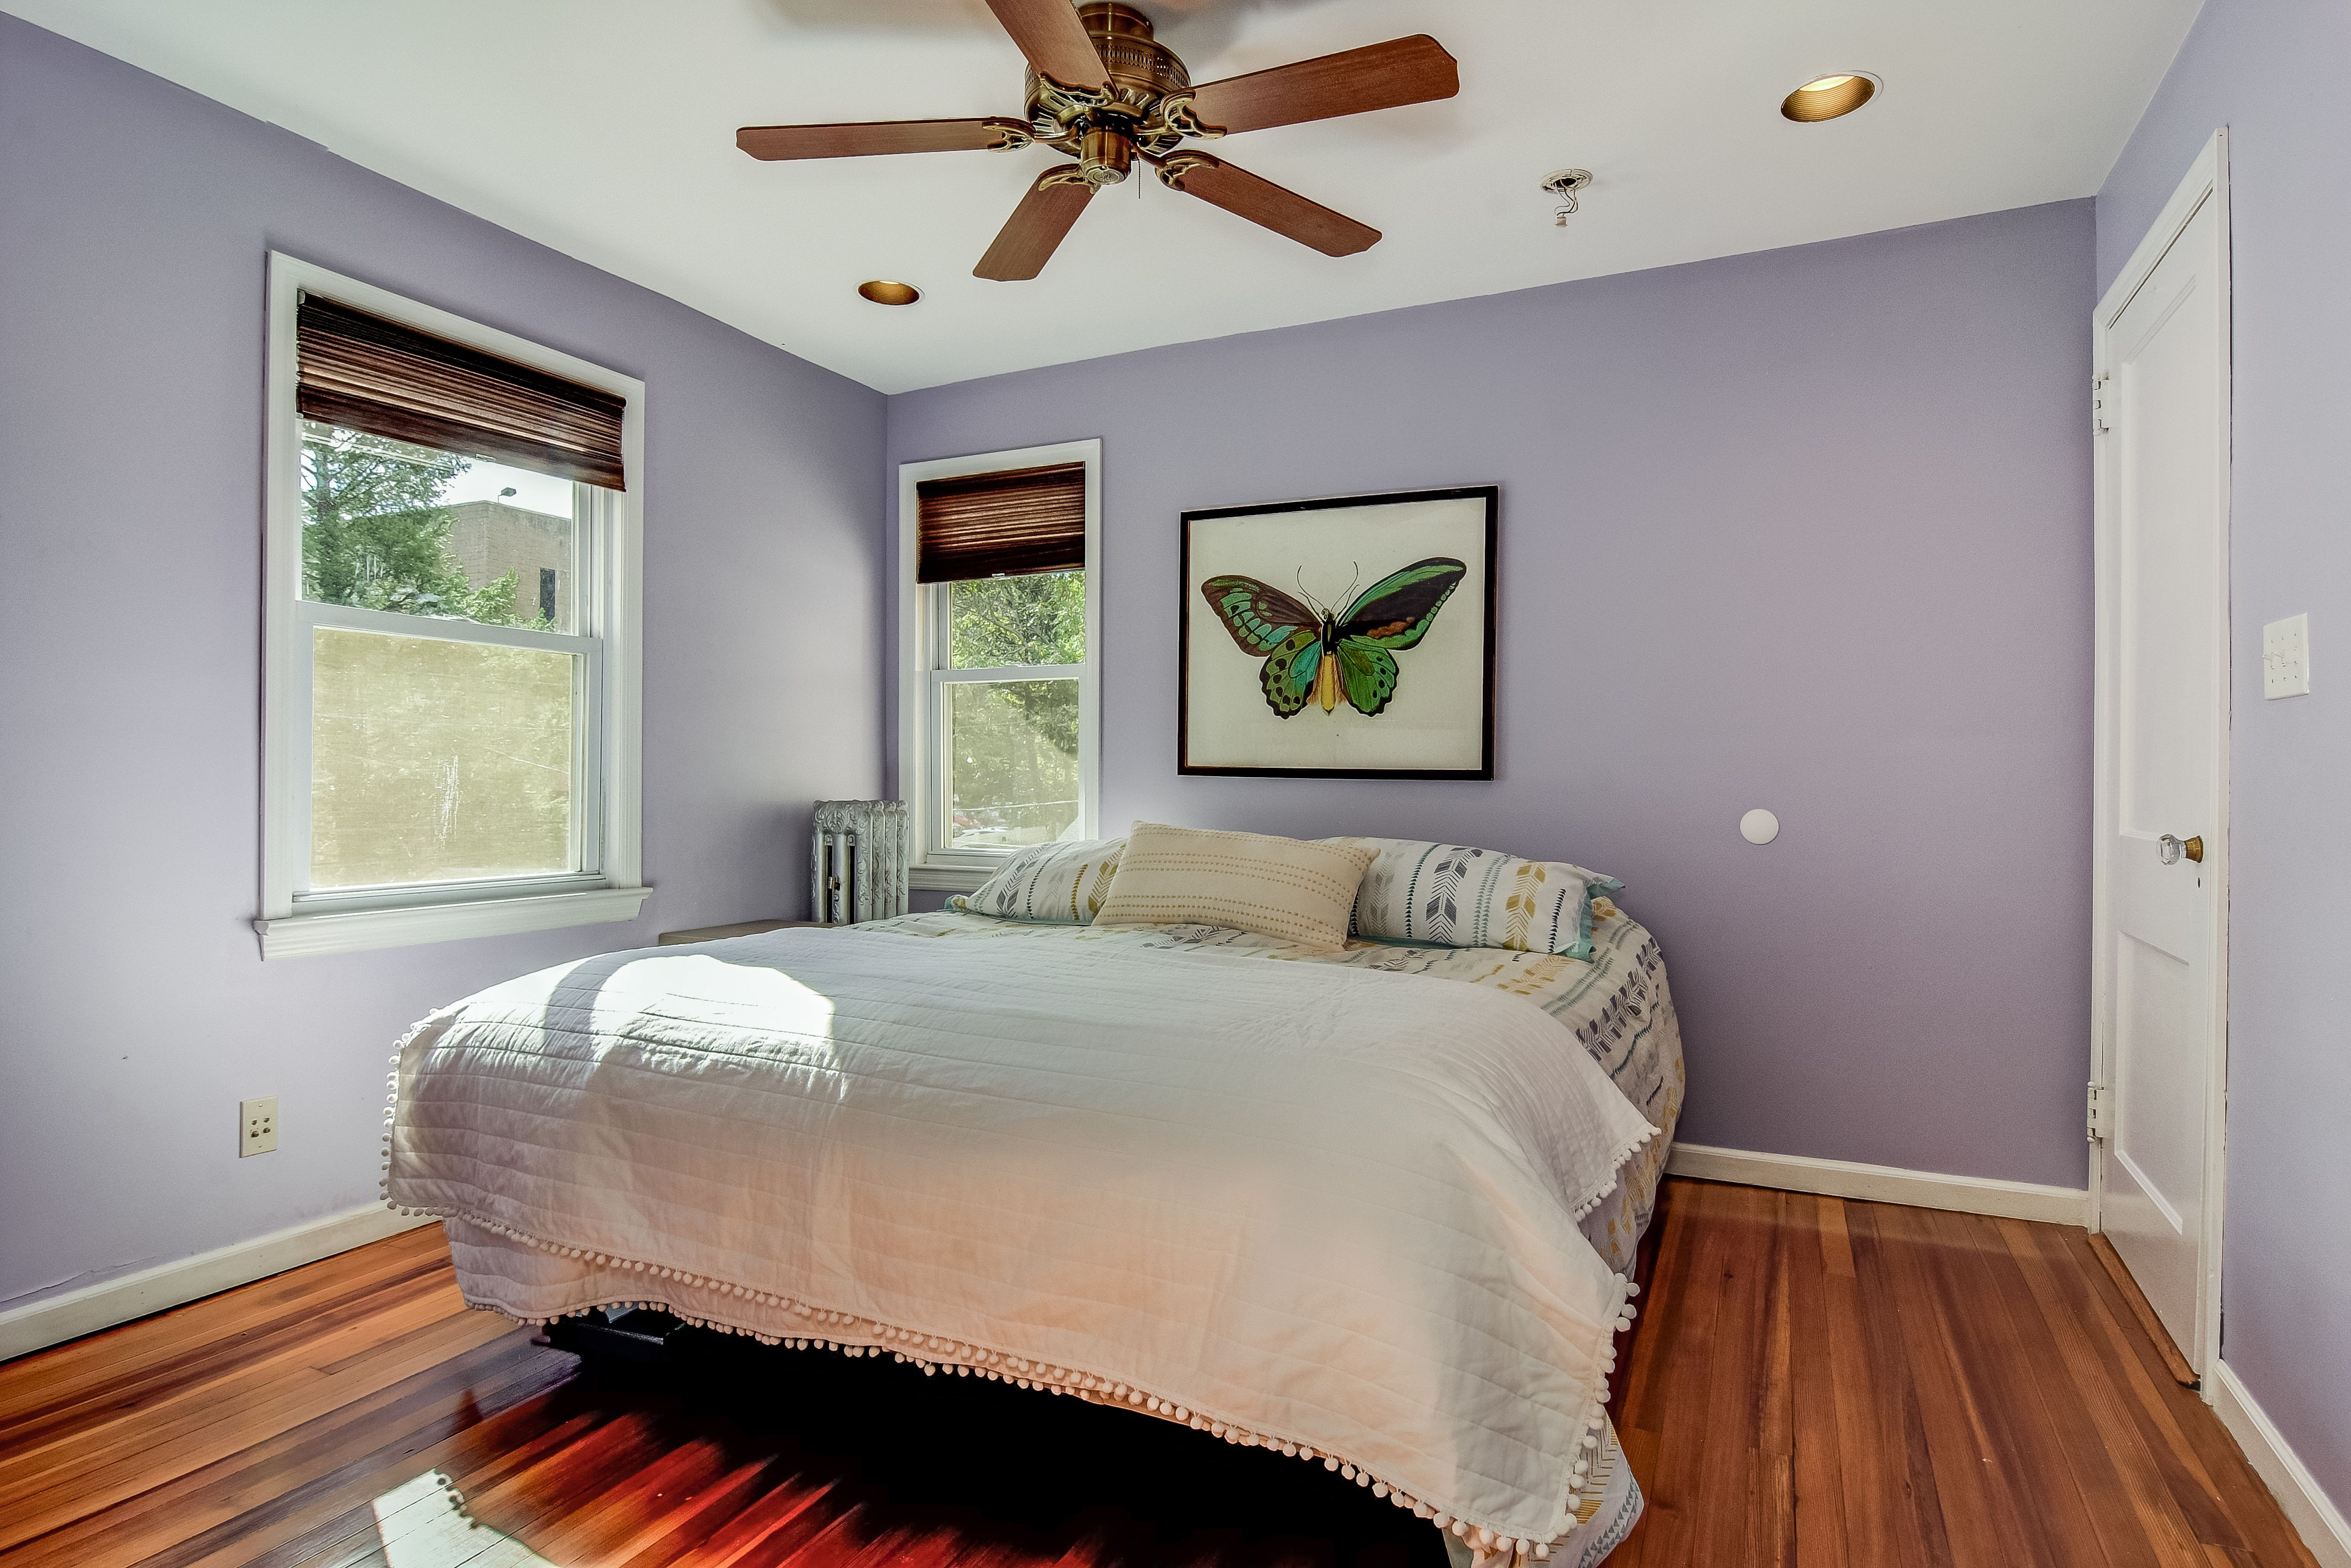 Master bedroom features hardwood floors, natural light and